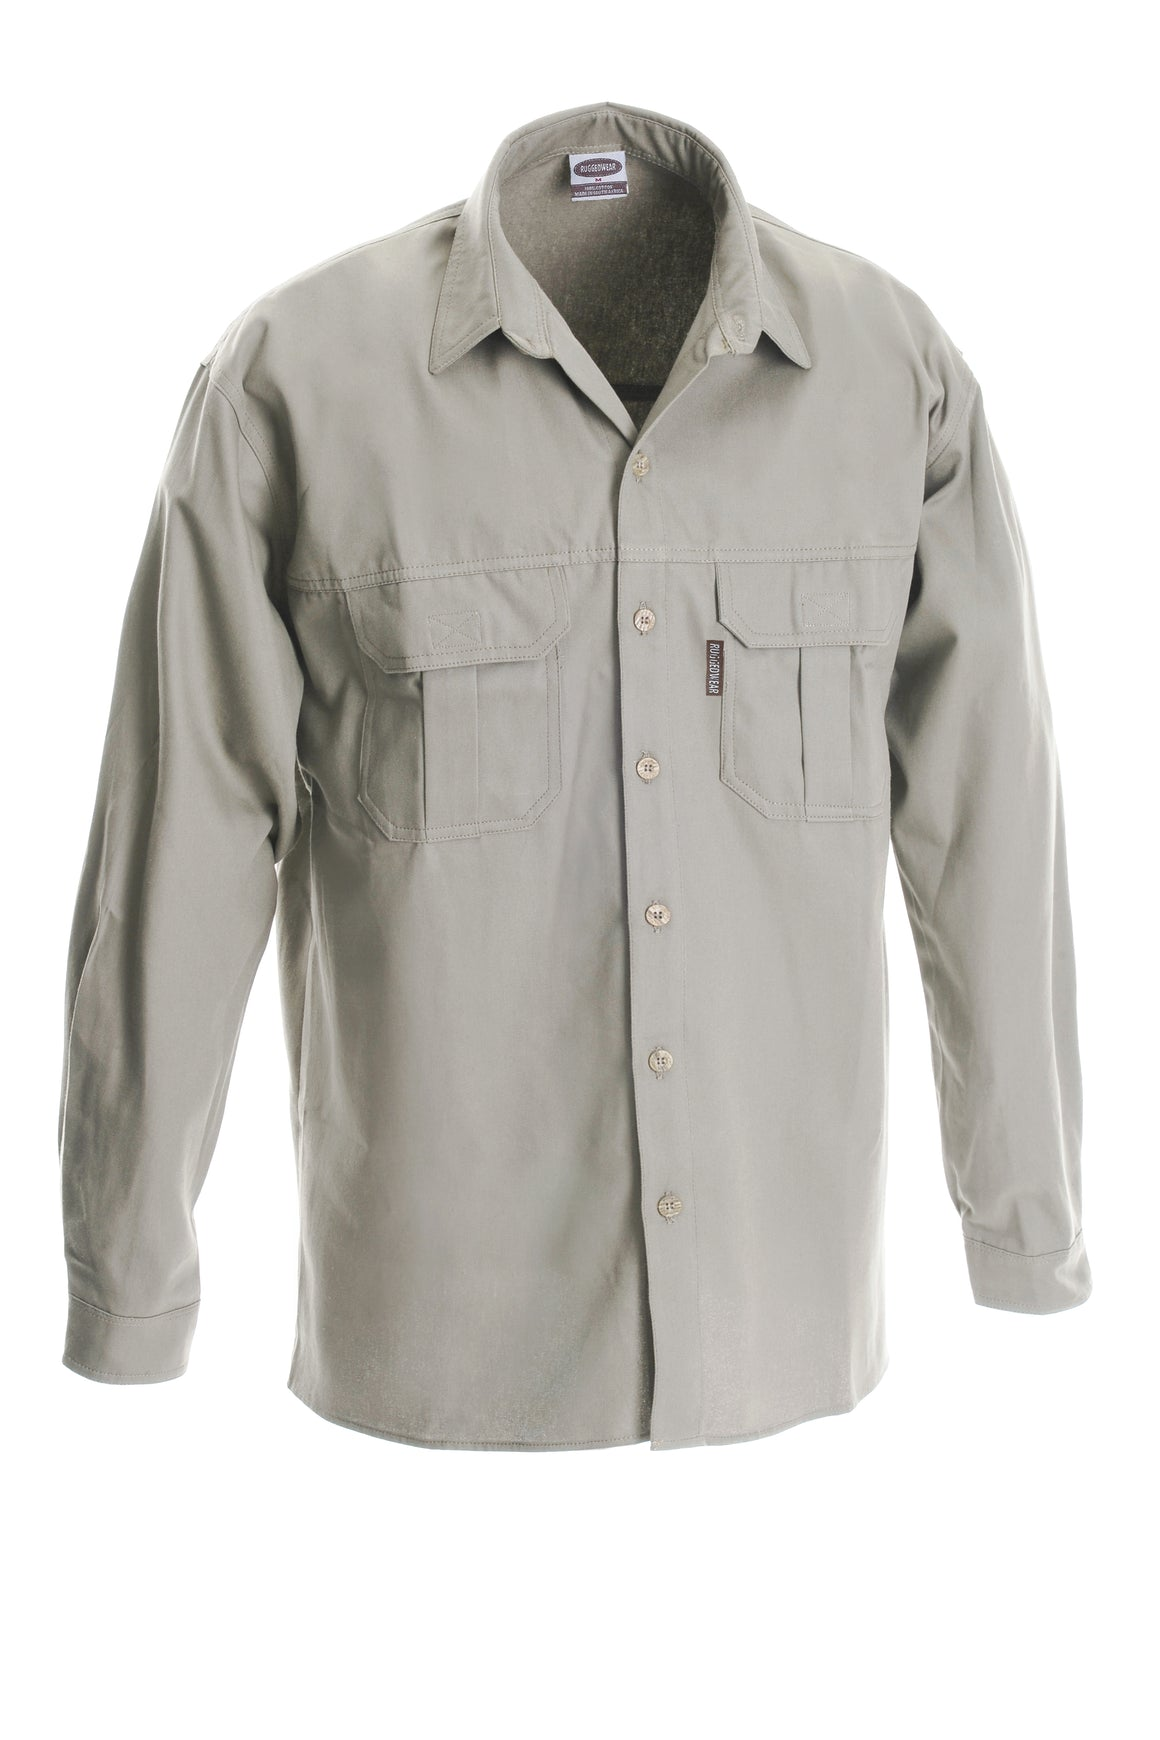 RuggedWear - Serengeti Long Sleeve - Khaki / Stone Shirt (heavier weight)